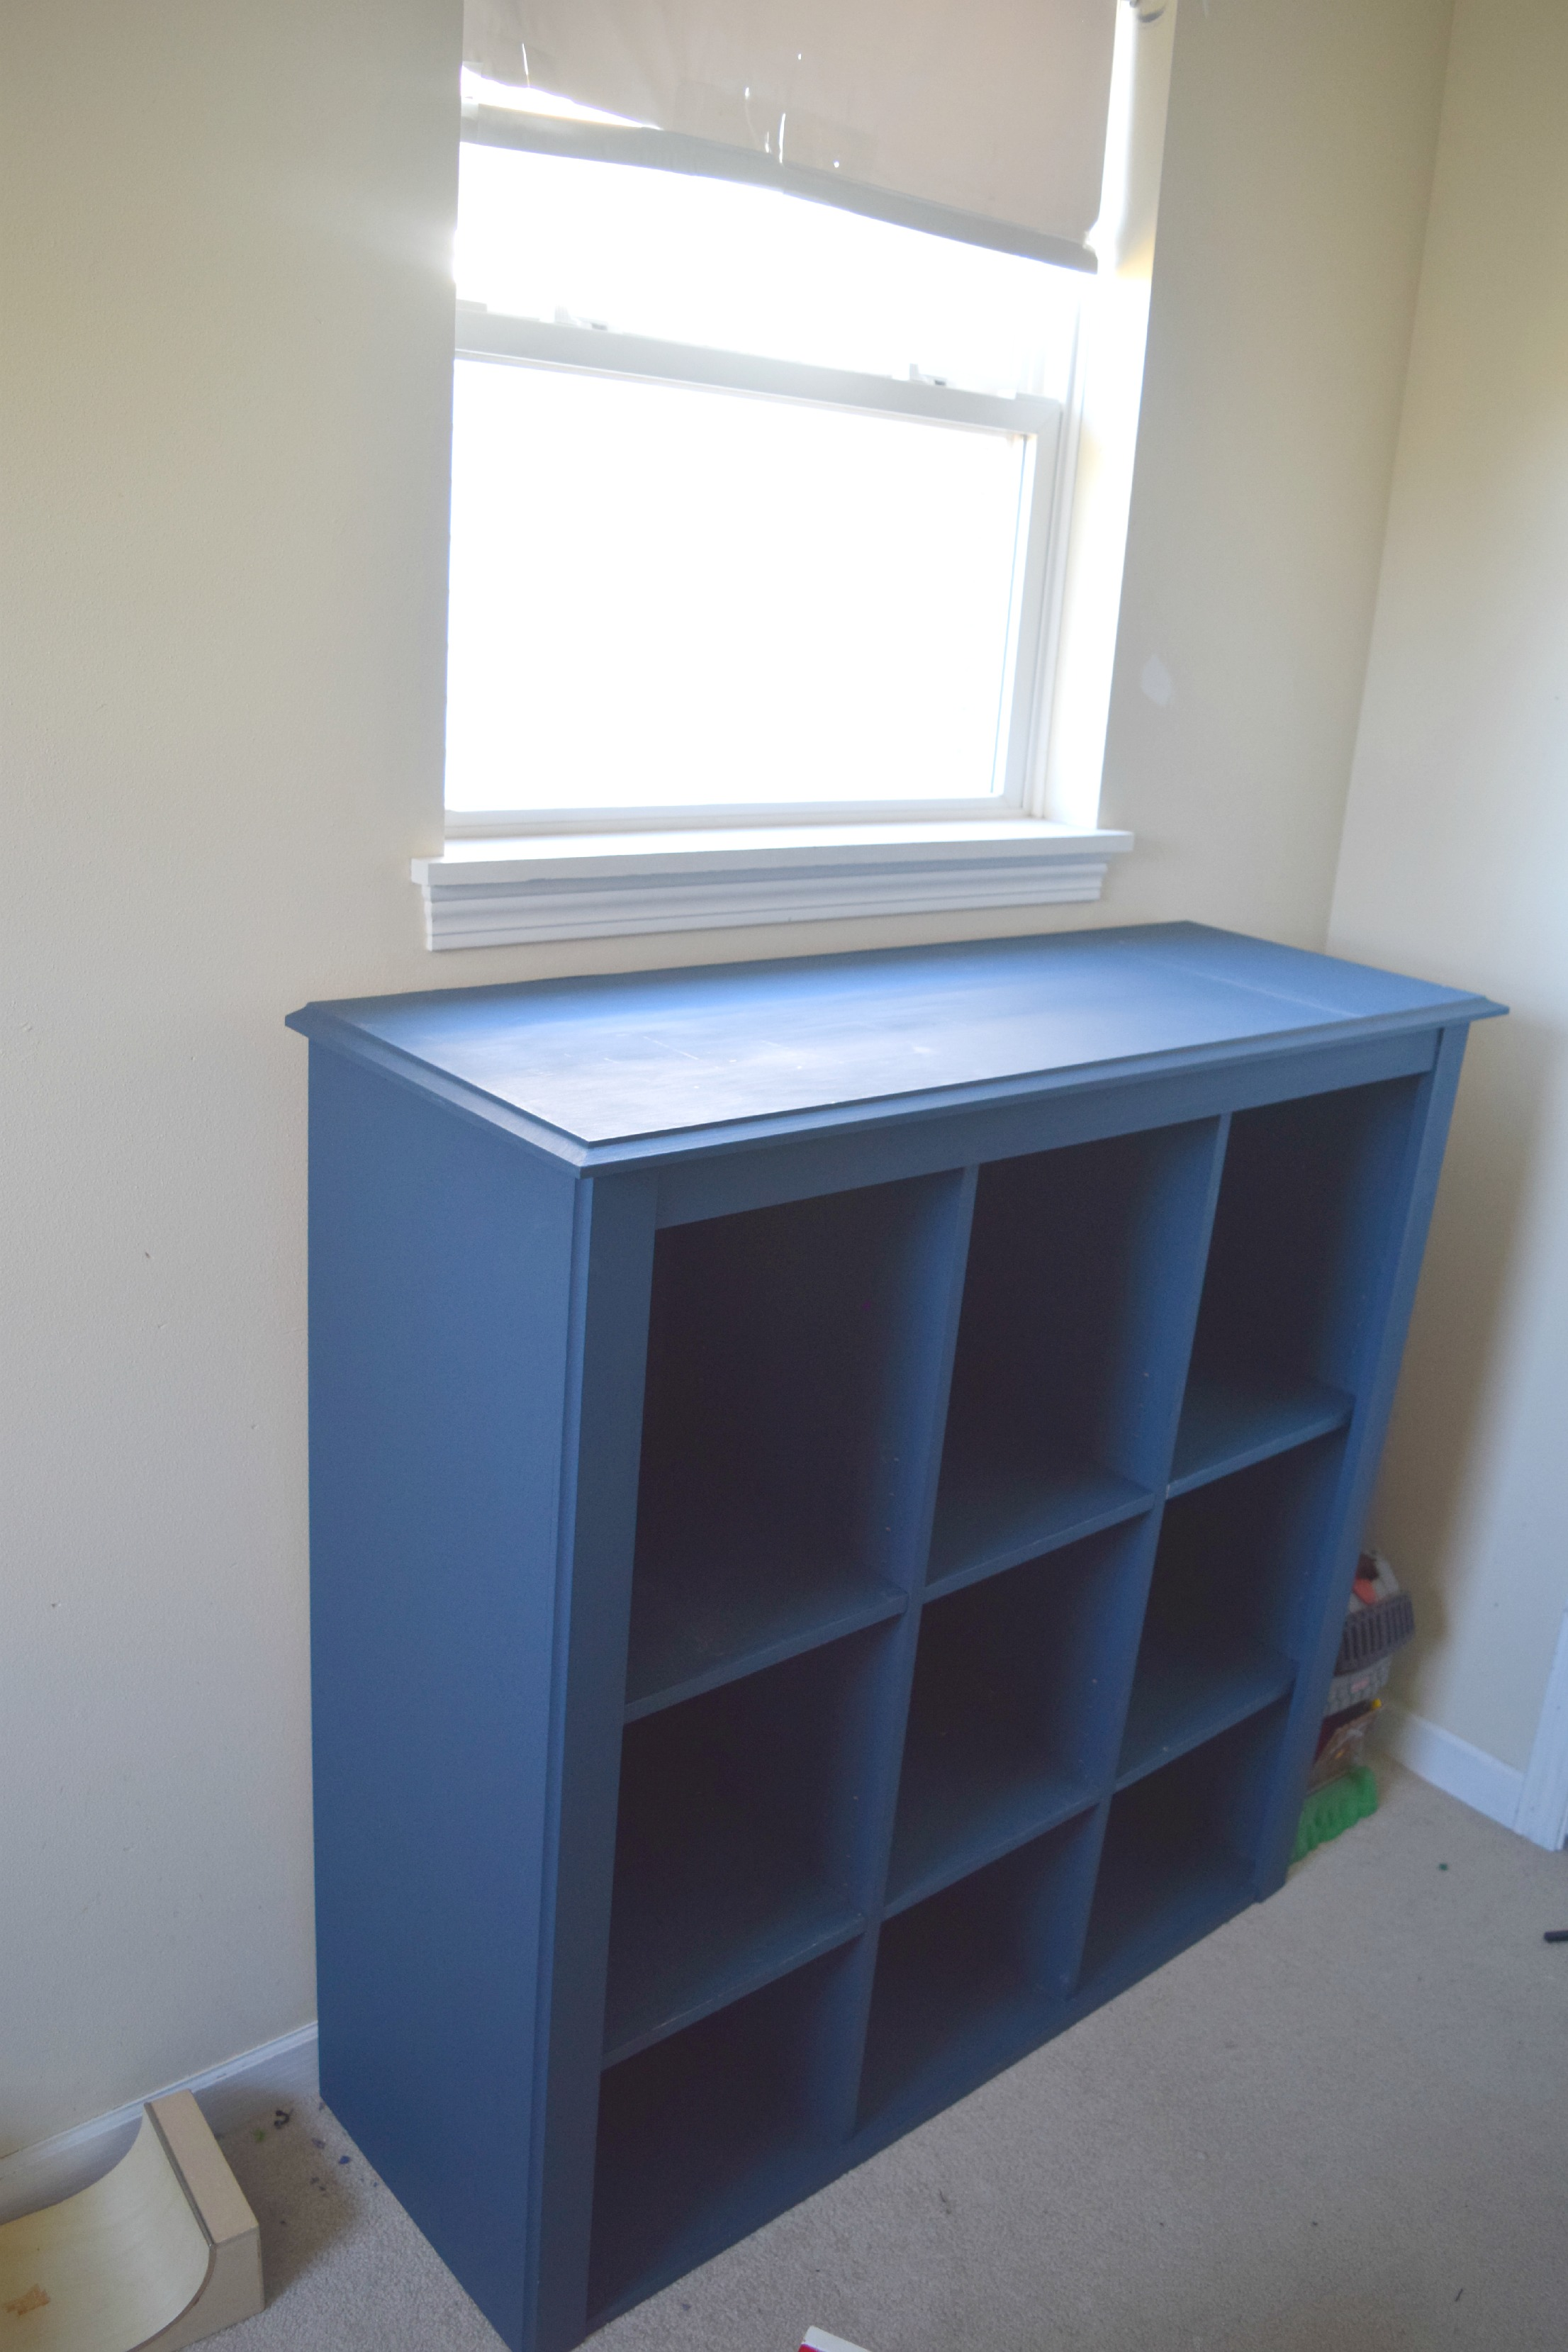 Toy Storage Cabinets With Doors Ikea With Toy Storage Cabinets With